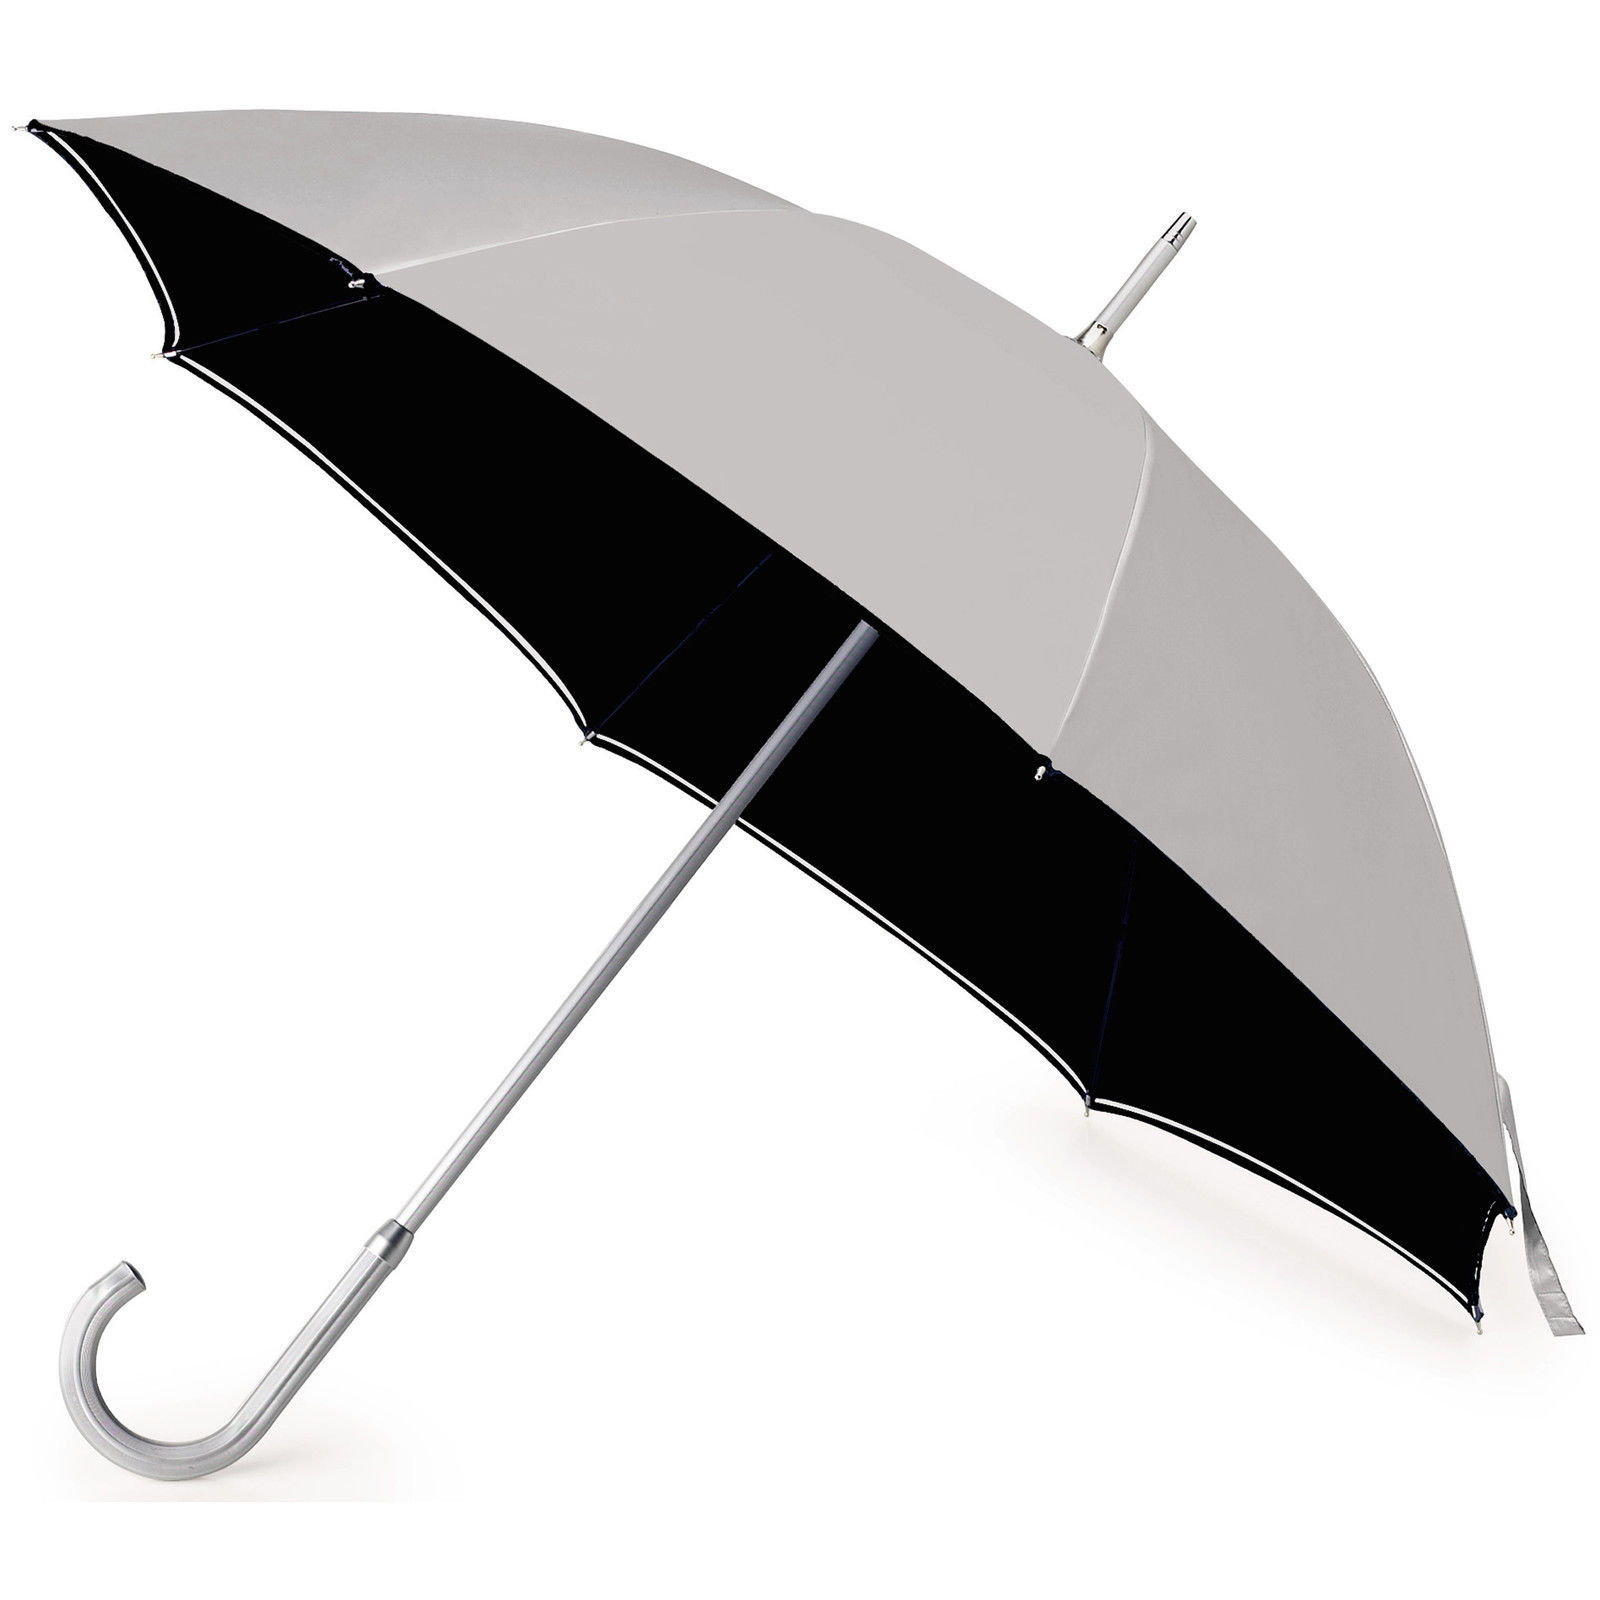 Bicolour classic manual umbrella - aluminium shaft & crooked handle. 106 cm Dia